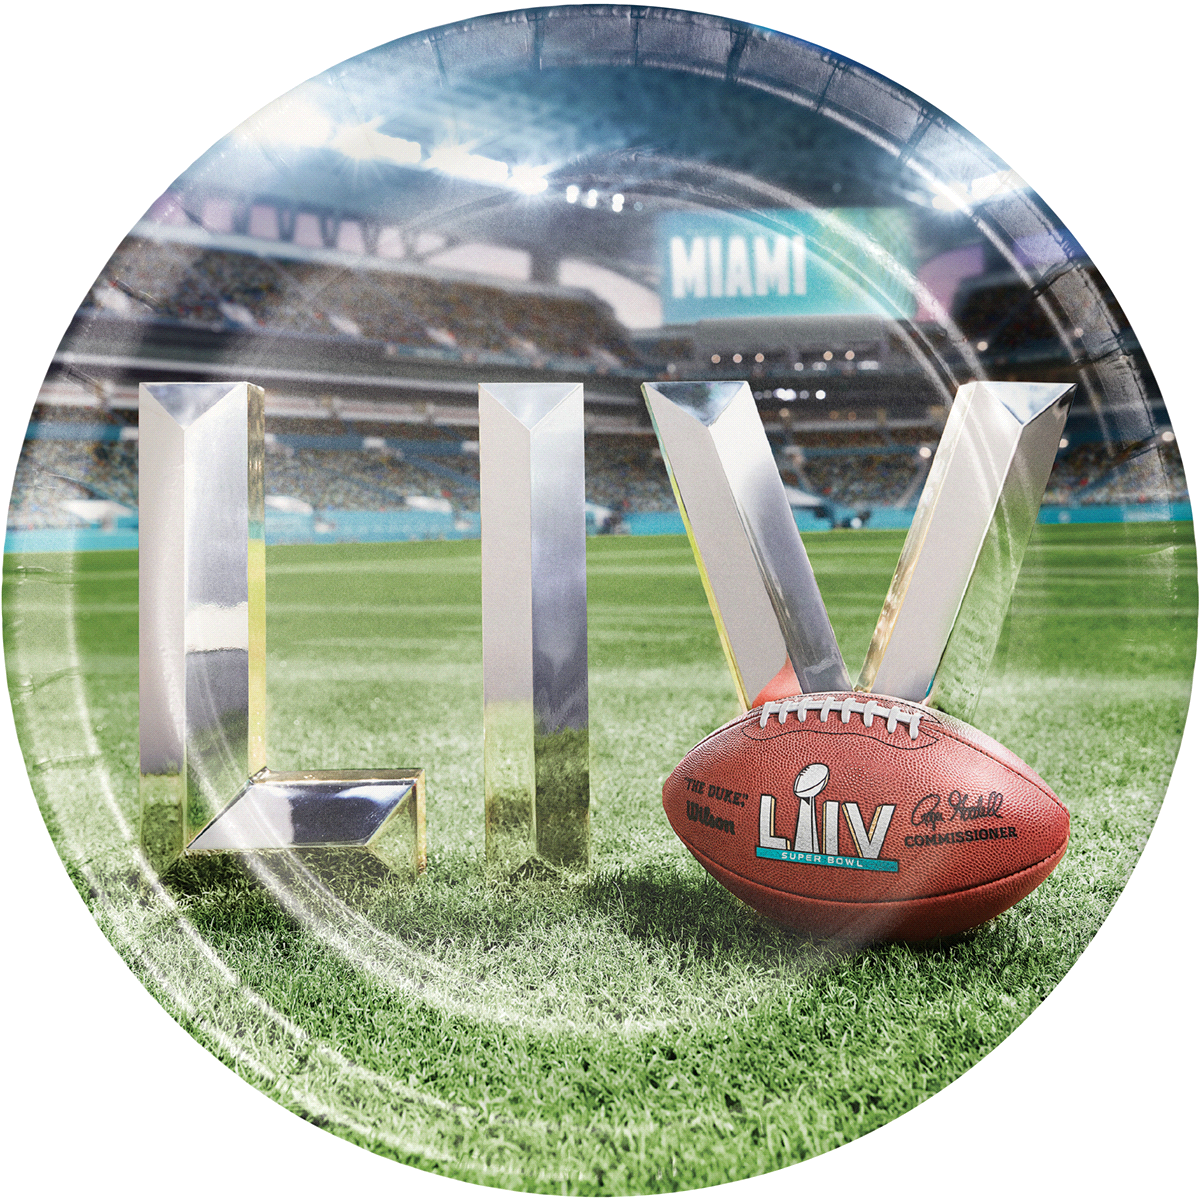 Betting line super bowl 47 2021 como mineral bitcoins android 18